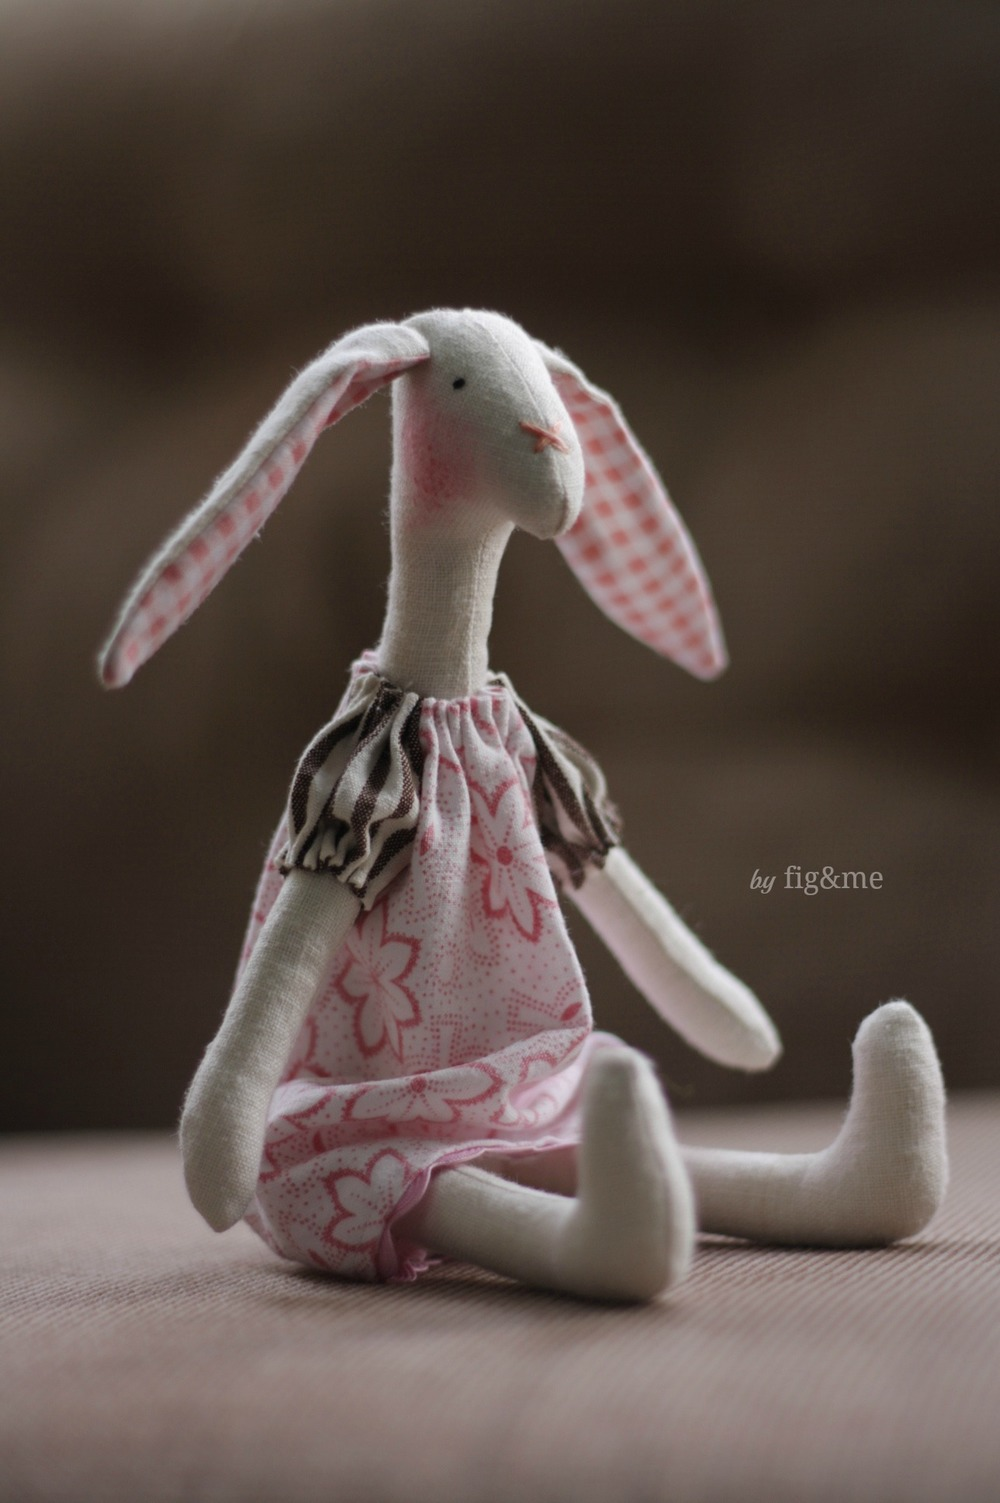 Mrs Wabbit by Fig&me.